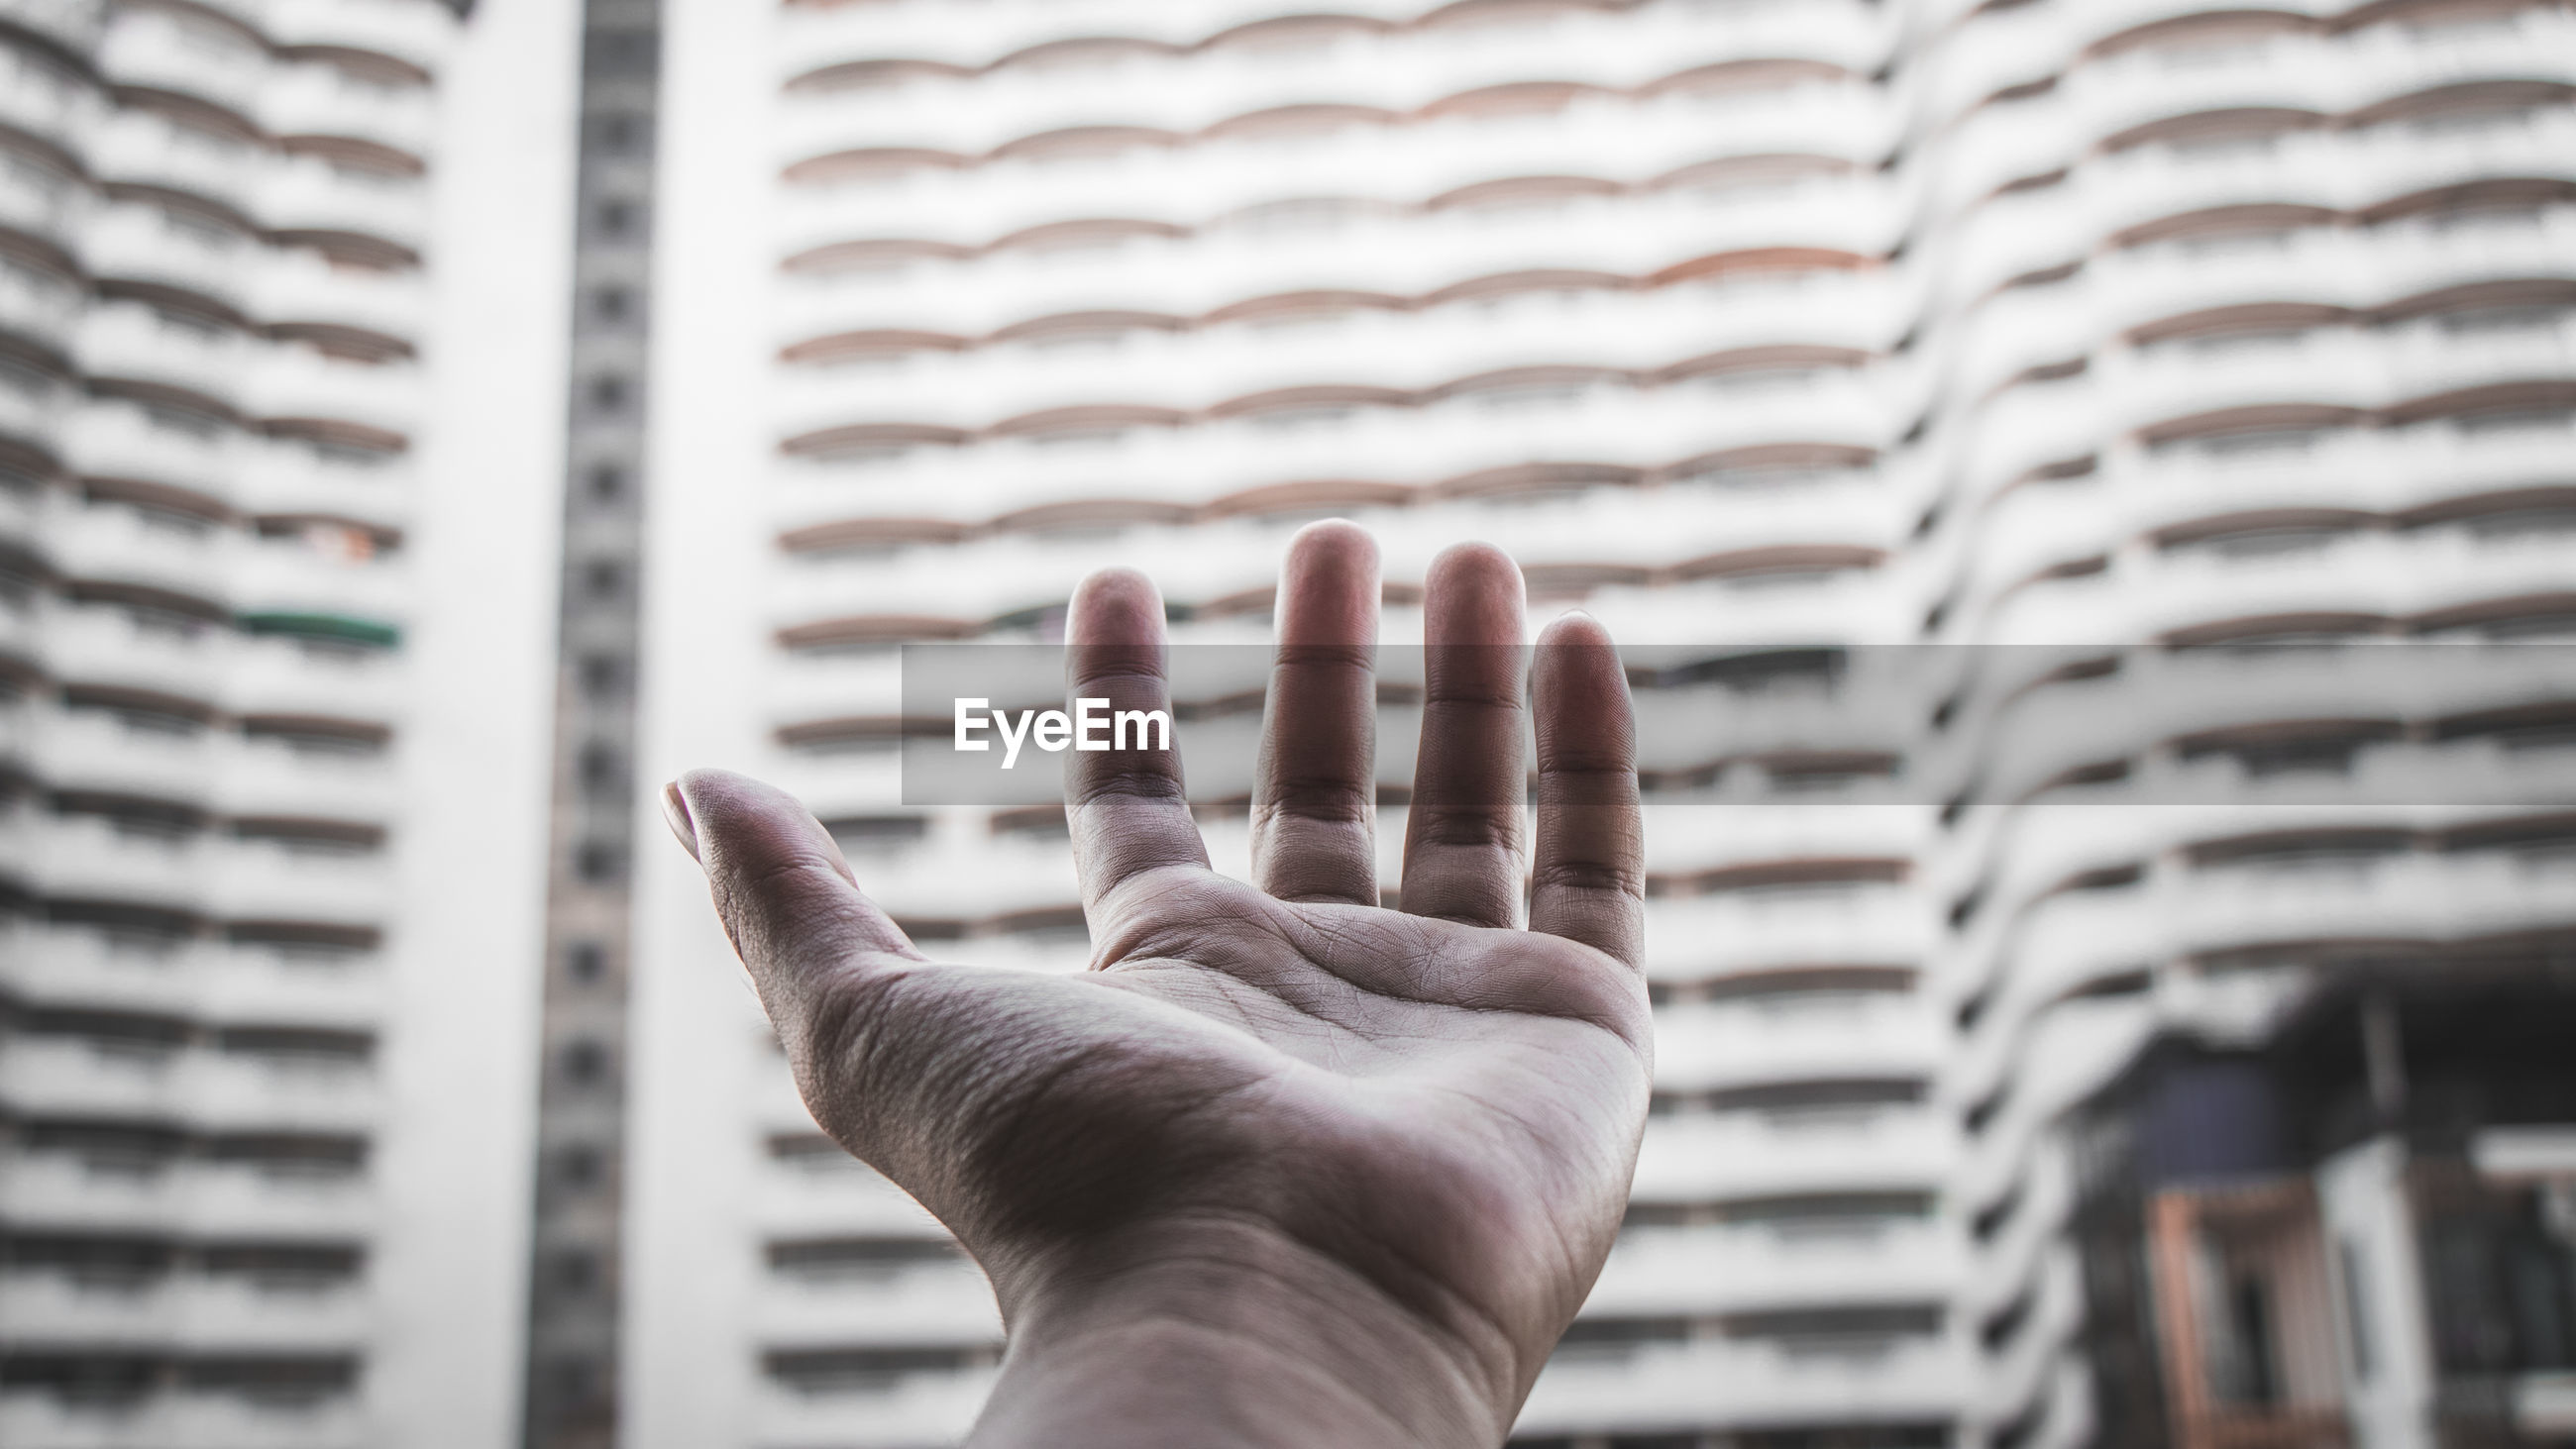 Cropped hand reaching buildings in city